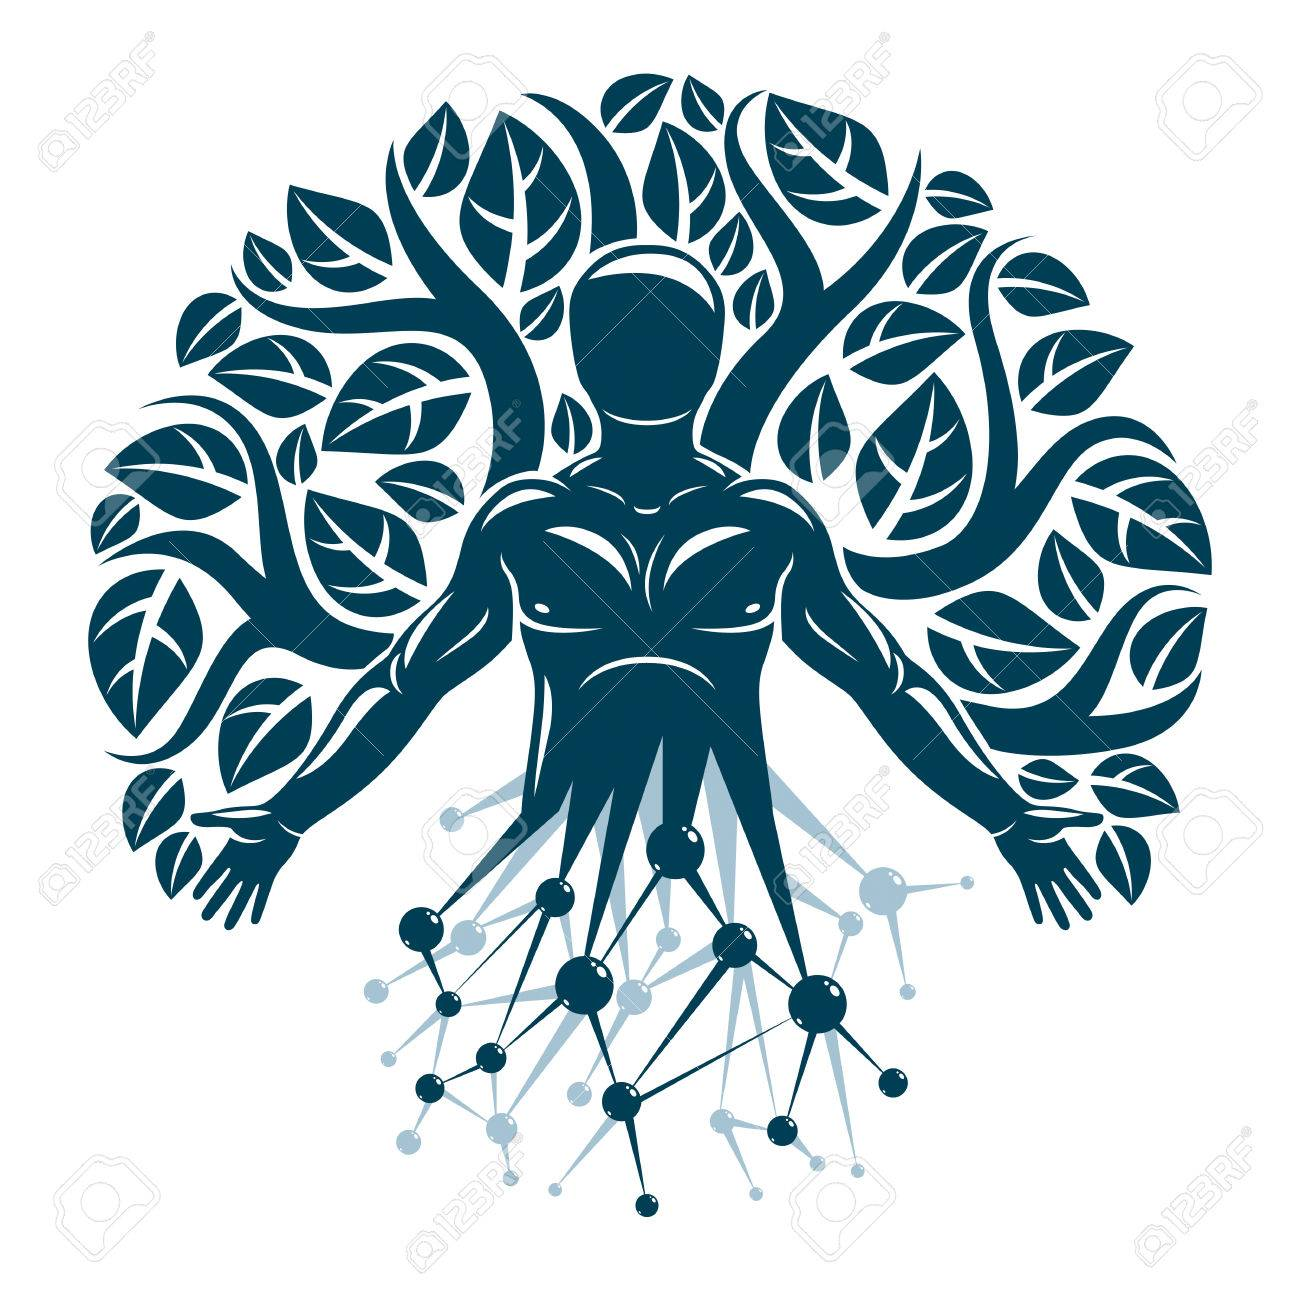 Vector individual, mystic character made with wireframe mesh connections and eco tree leaves. Human, science and ecology interaction, technology and nature balance. - 84052707